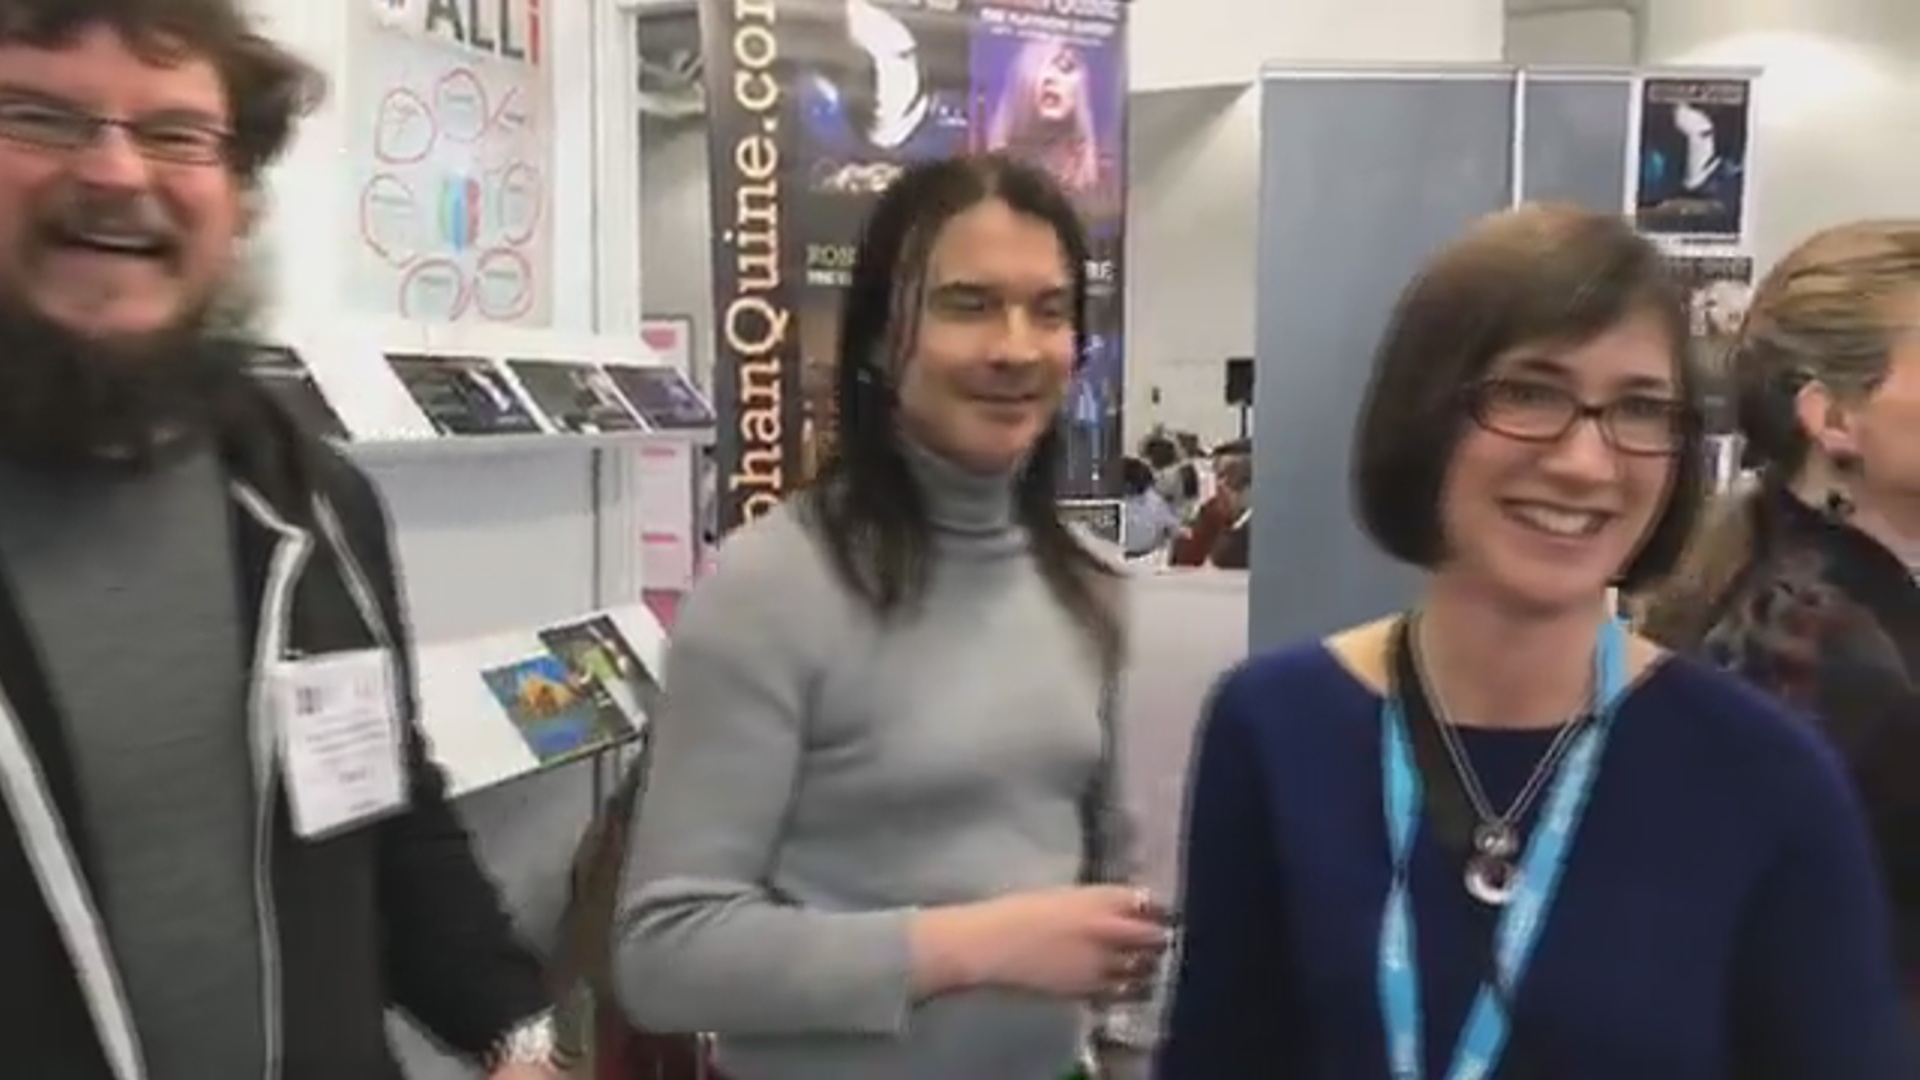 LBF18 launch of Rohan Quine's 'The Beasts of Electra Drive', Dan Holloway's 'Kill Land' & Jane Davis's 'Smash all the Windows' - 22